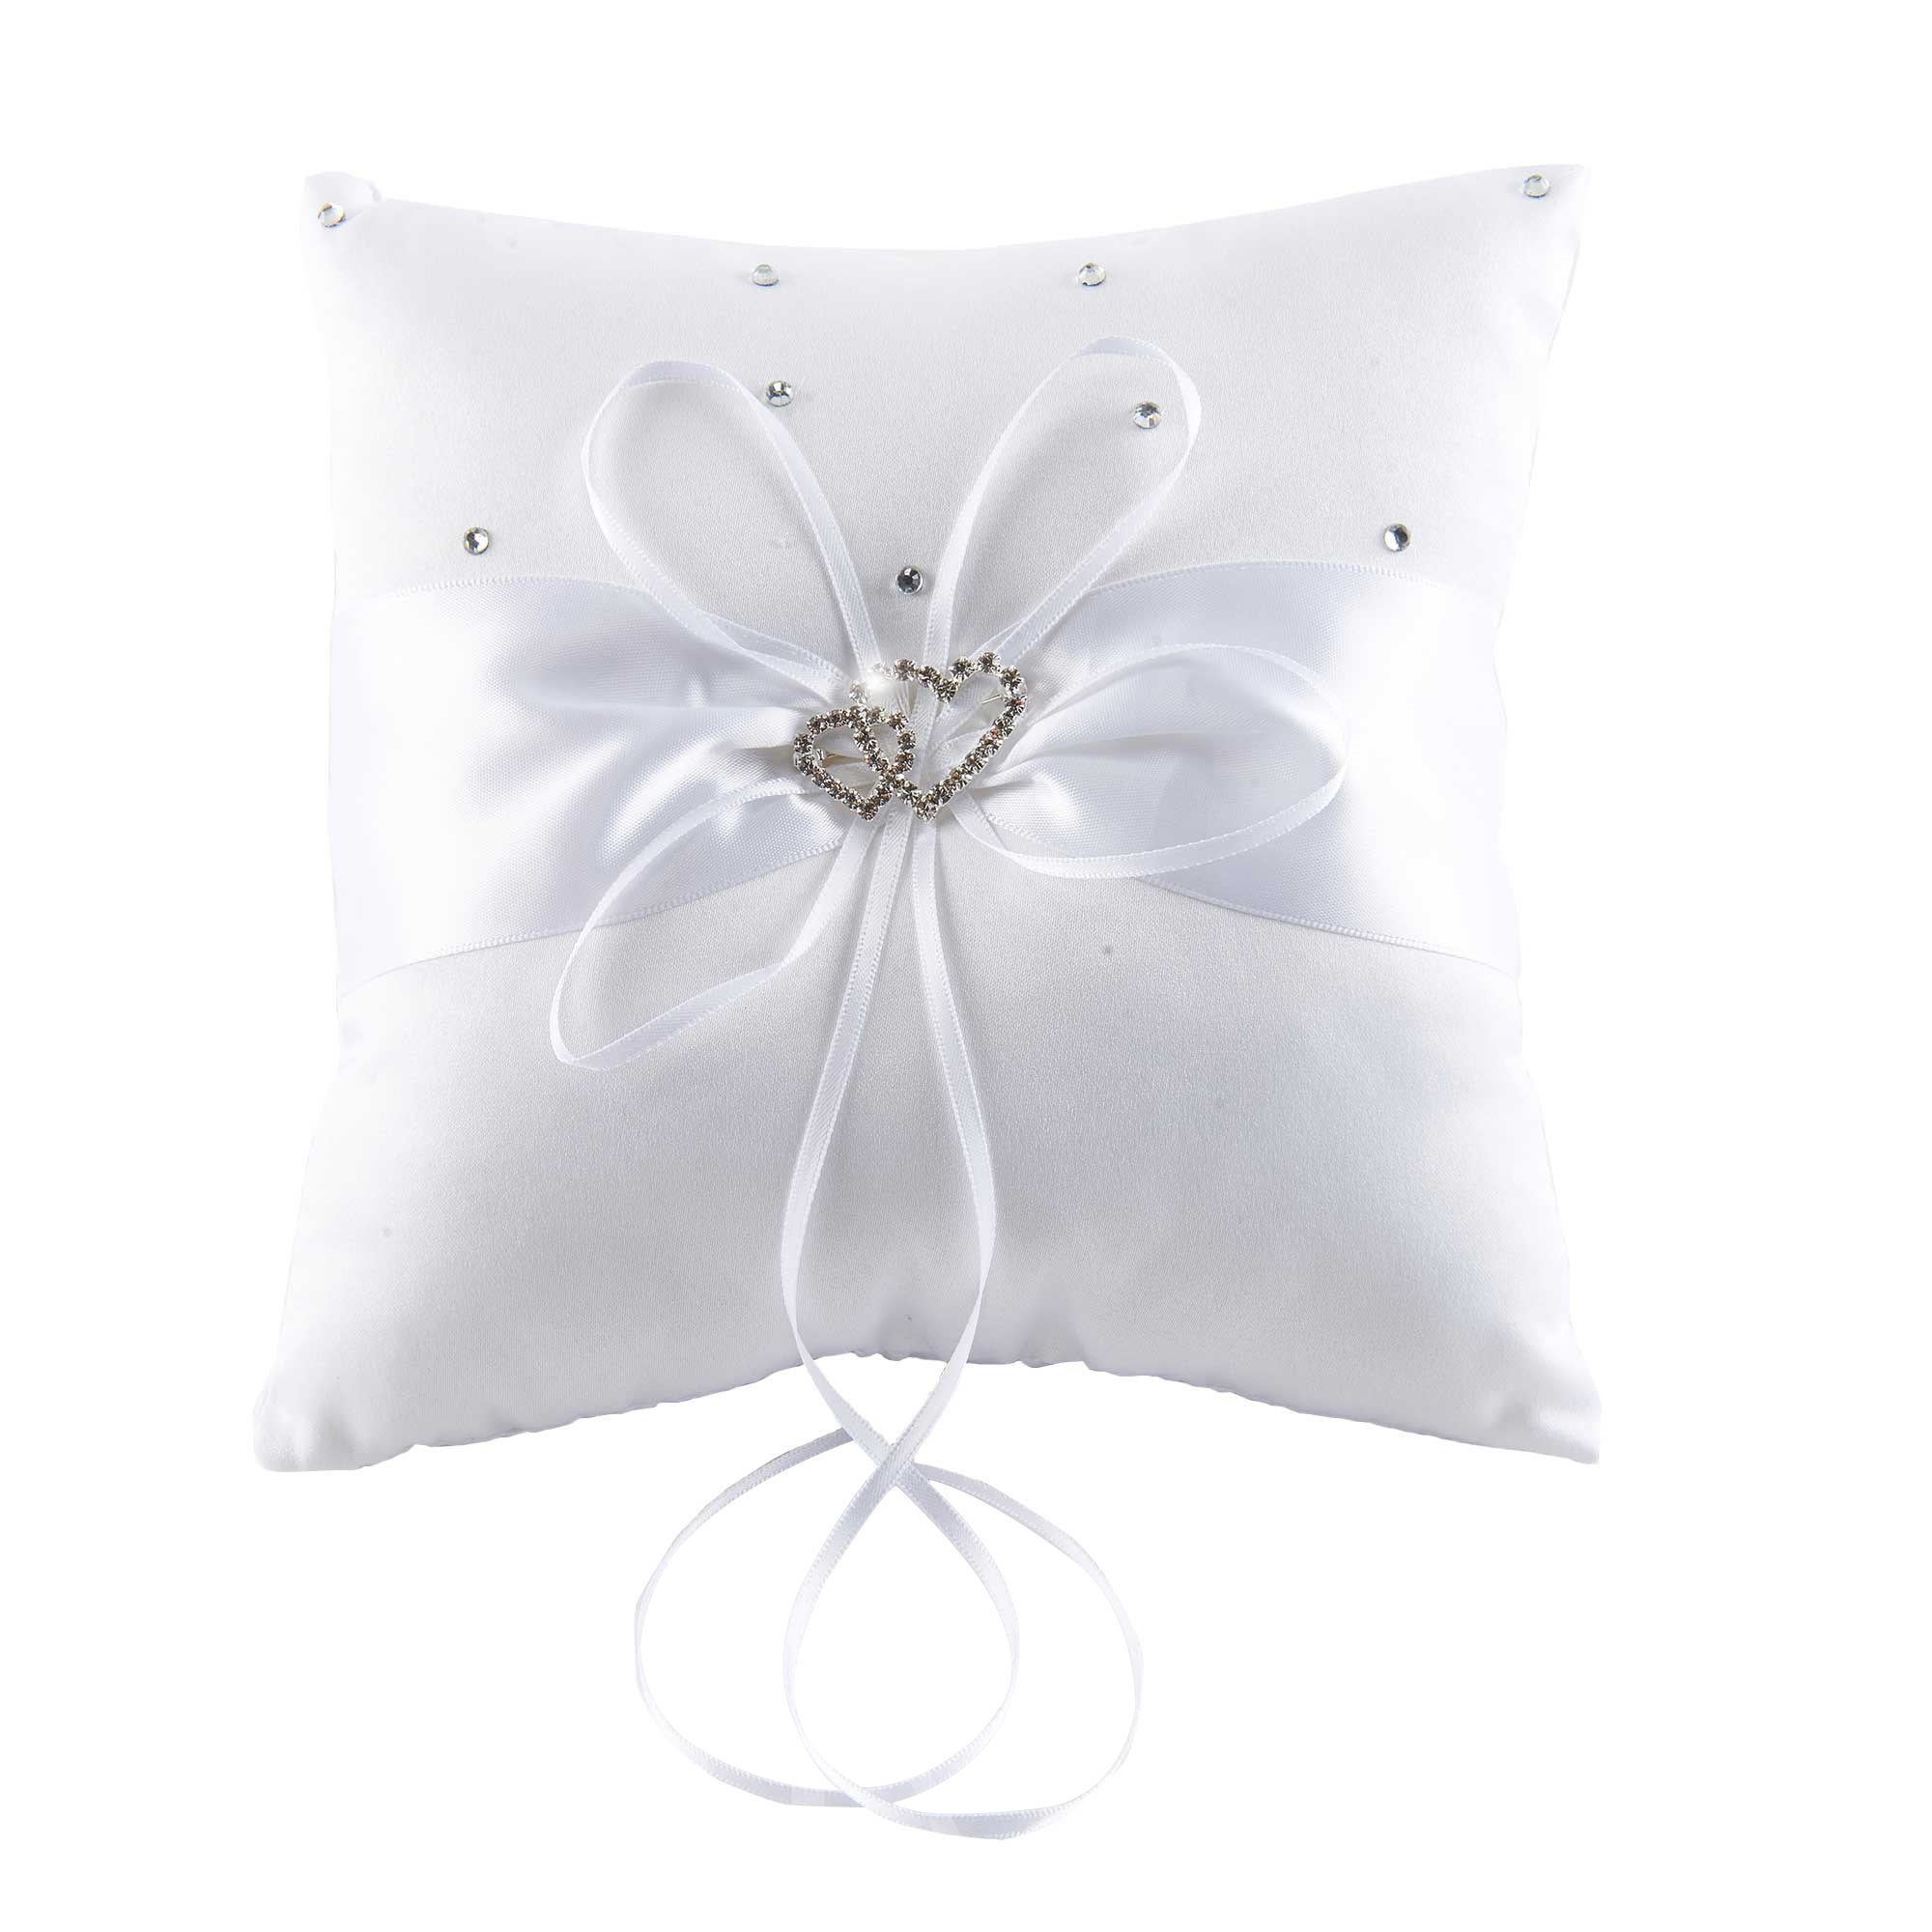 Beading Wedding Ring Pillow with Ribbons